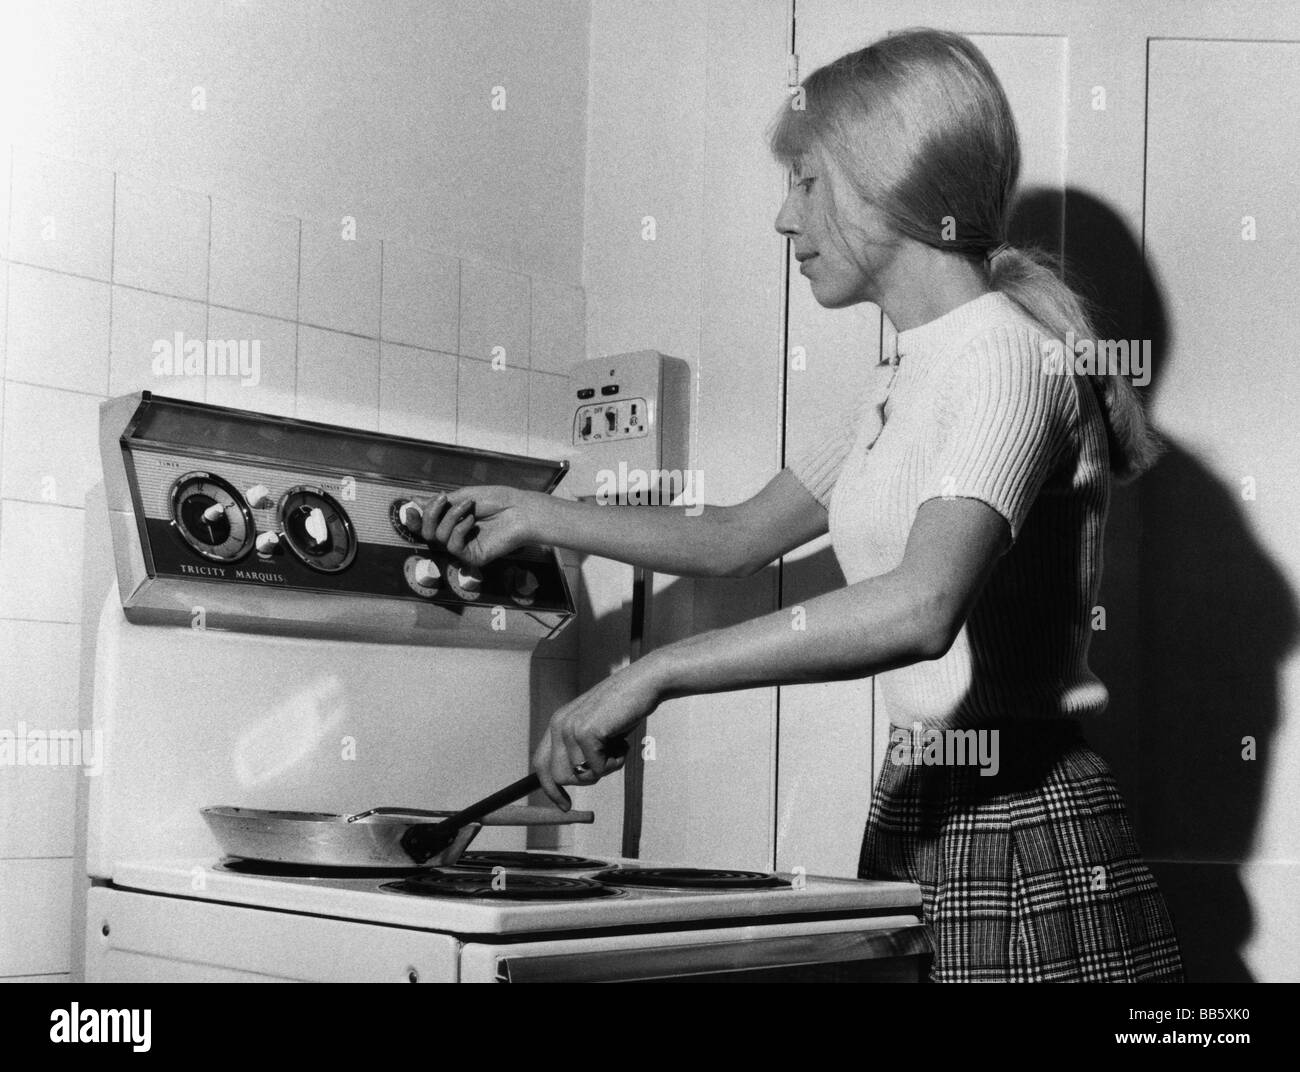 Kitchen Appliance 1960s High Resolution Stock Photography And Images Alamy